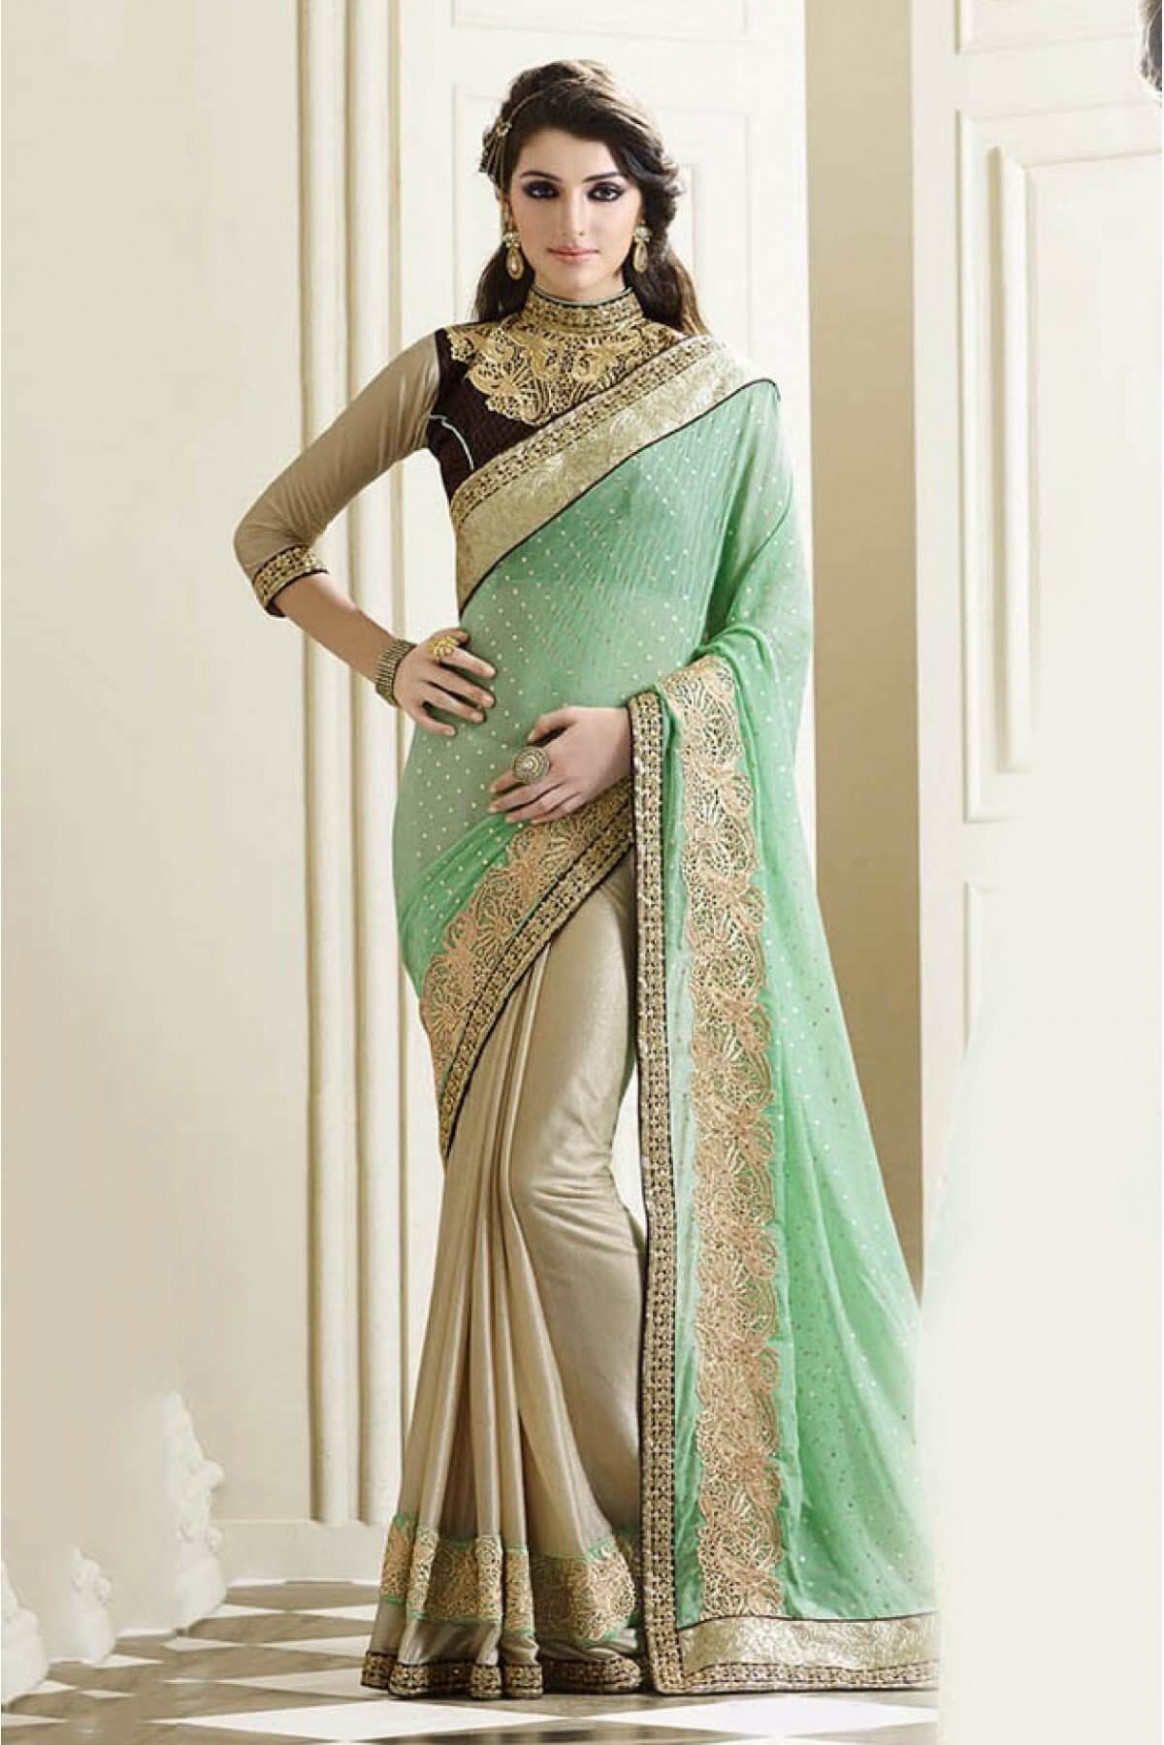 Latest New Saree Design Trends 2019 - All You Should Know